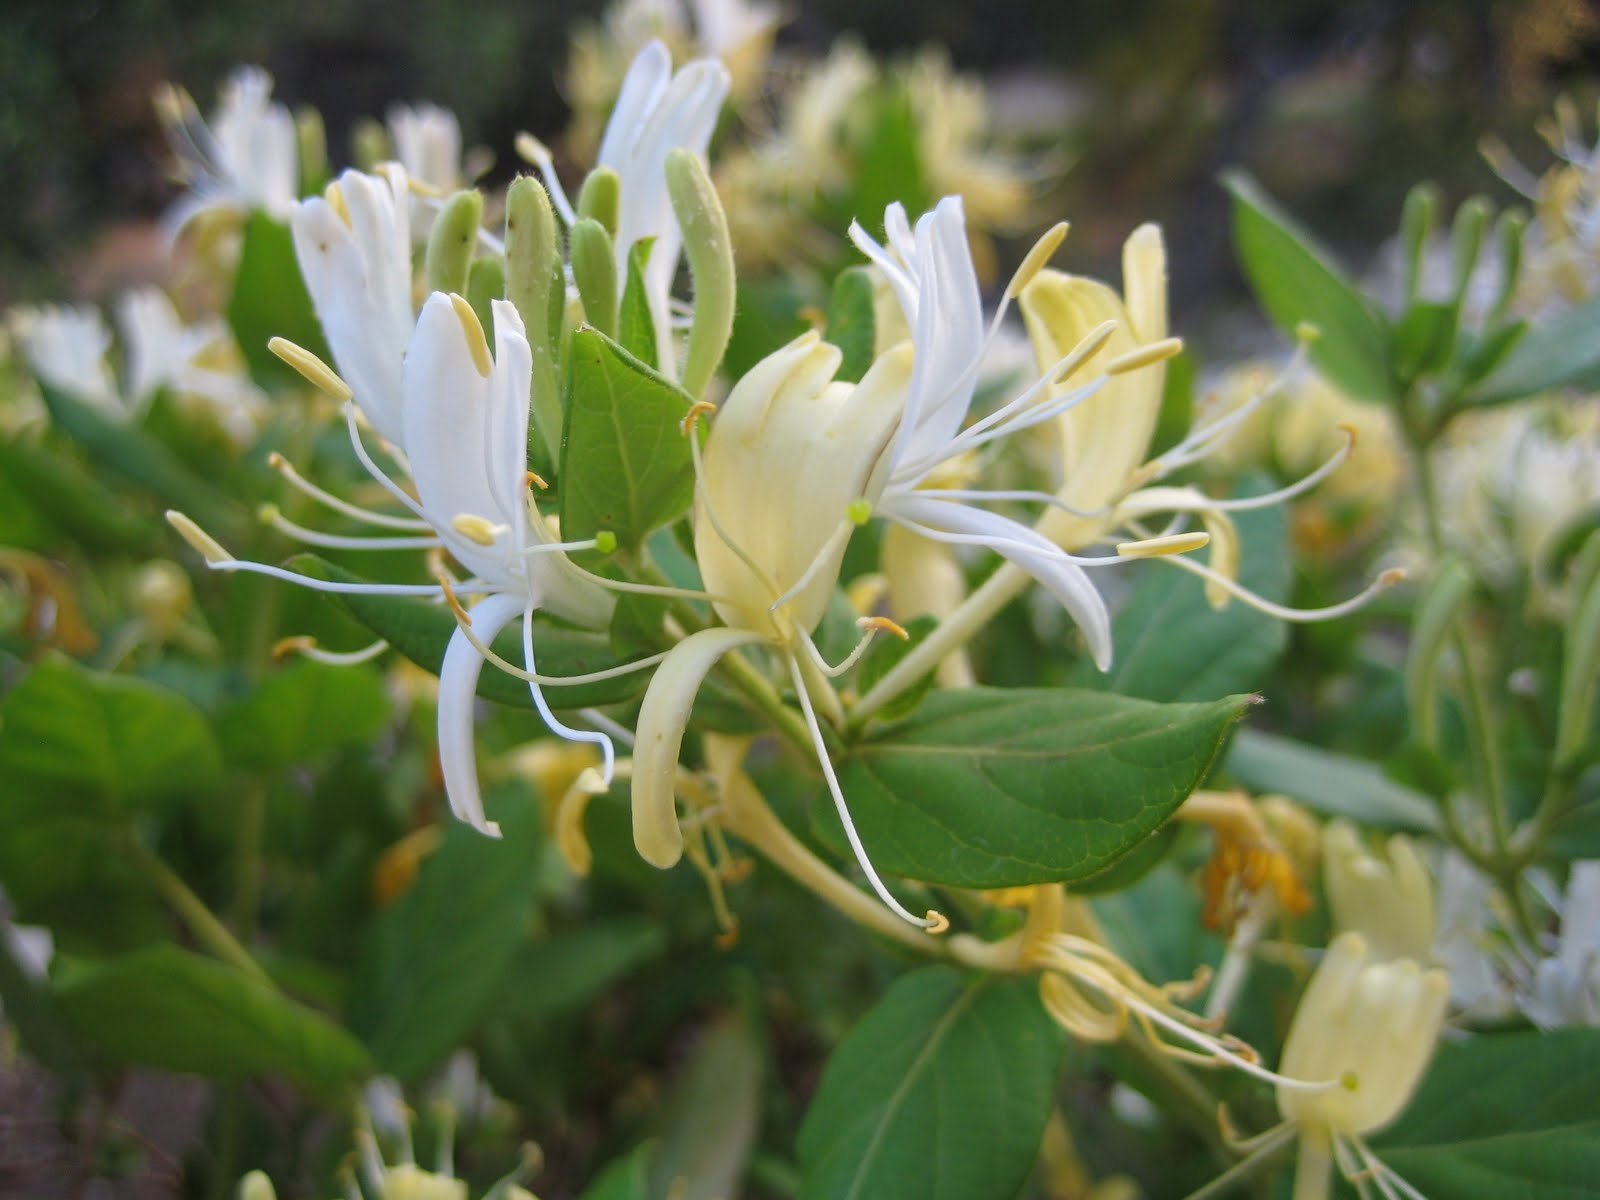 Every Time I Go Outside I Smell The Lovely Delicate Blooms That Havee  With Spring I Got To Thinking About What I Could Possibly Make With  Honeysuckle